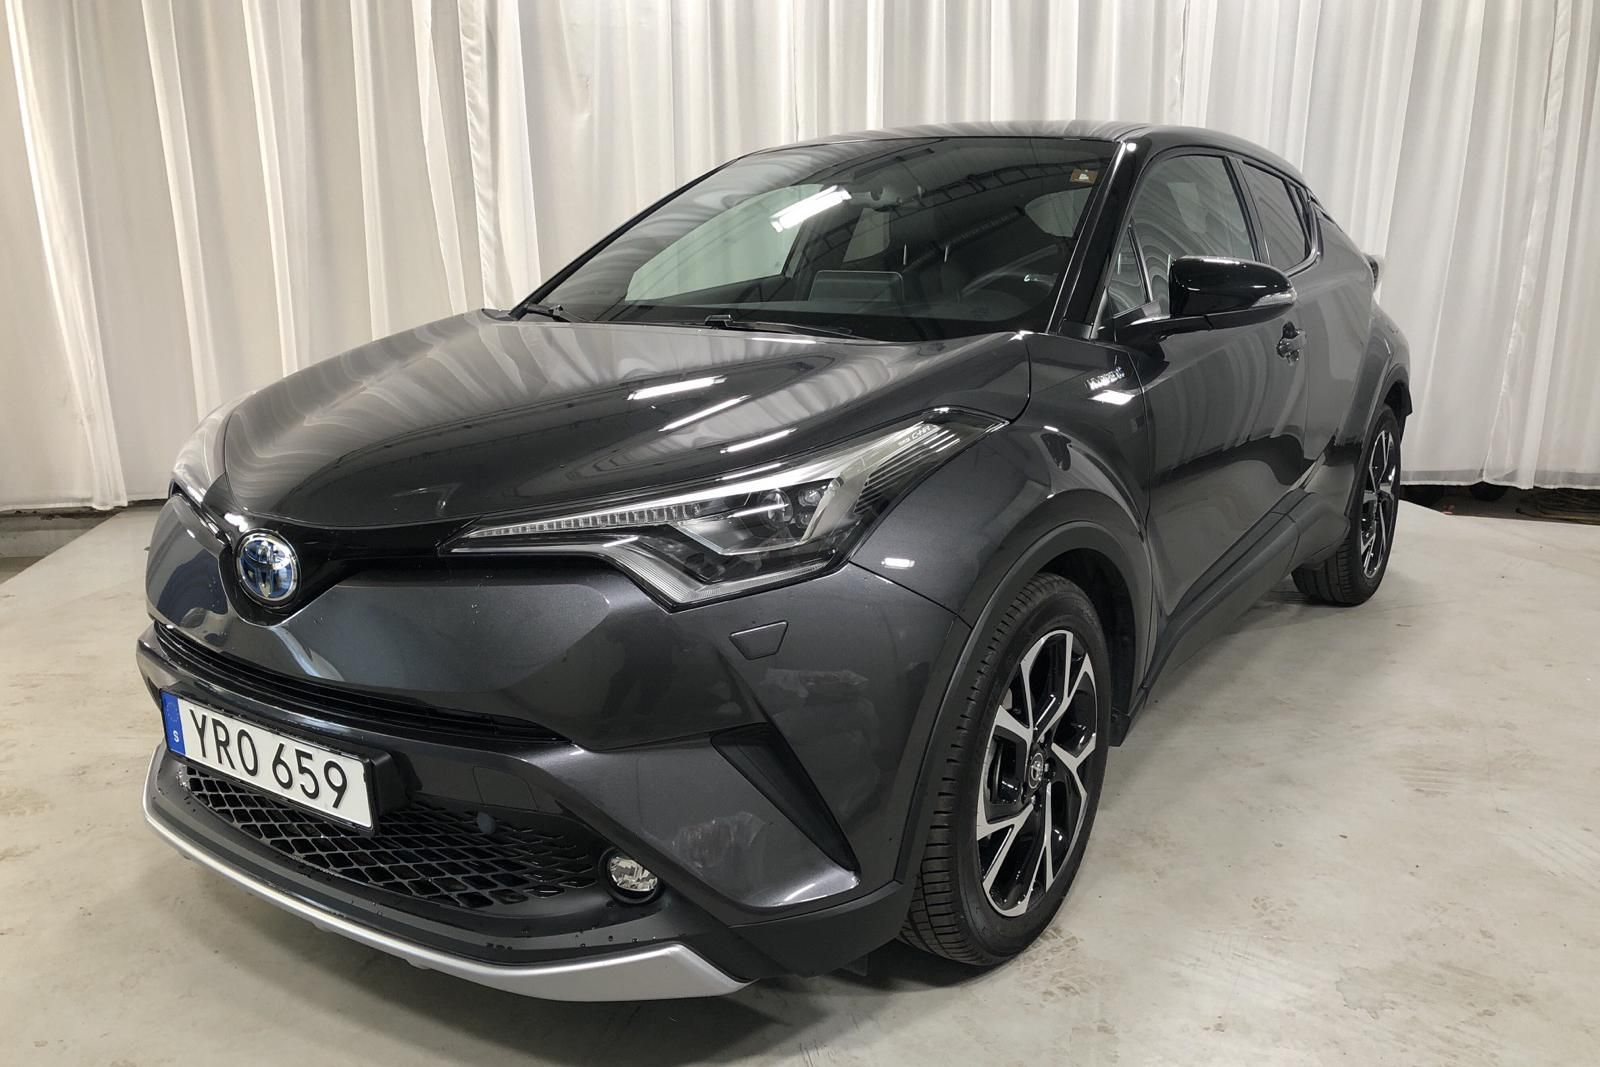 Toyota C-HR 1.8 HSD (122 PS)